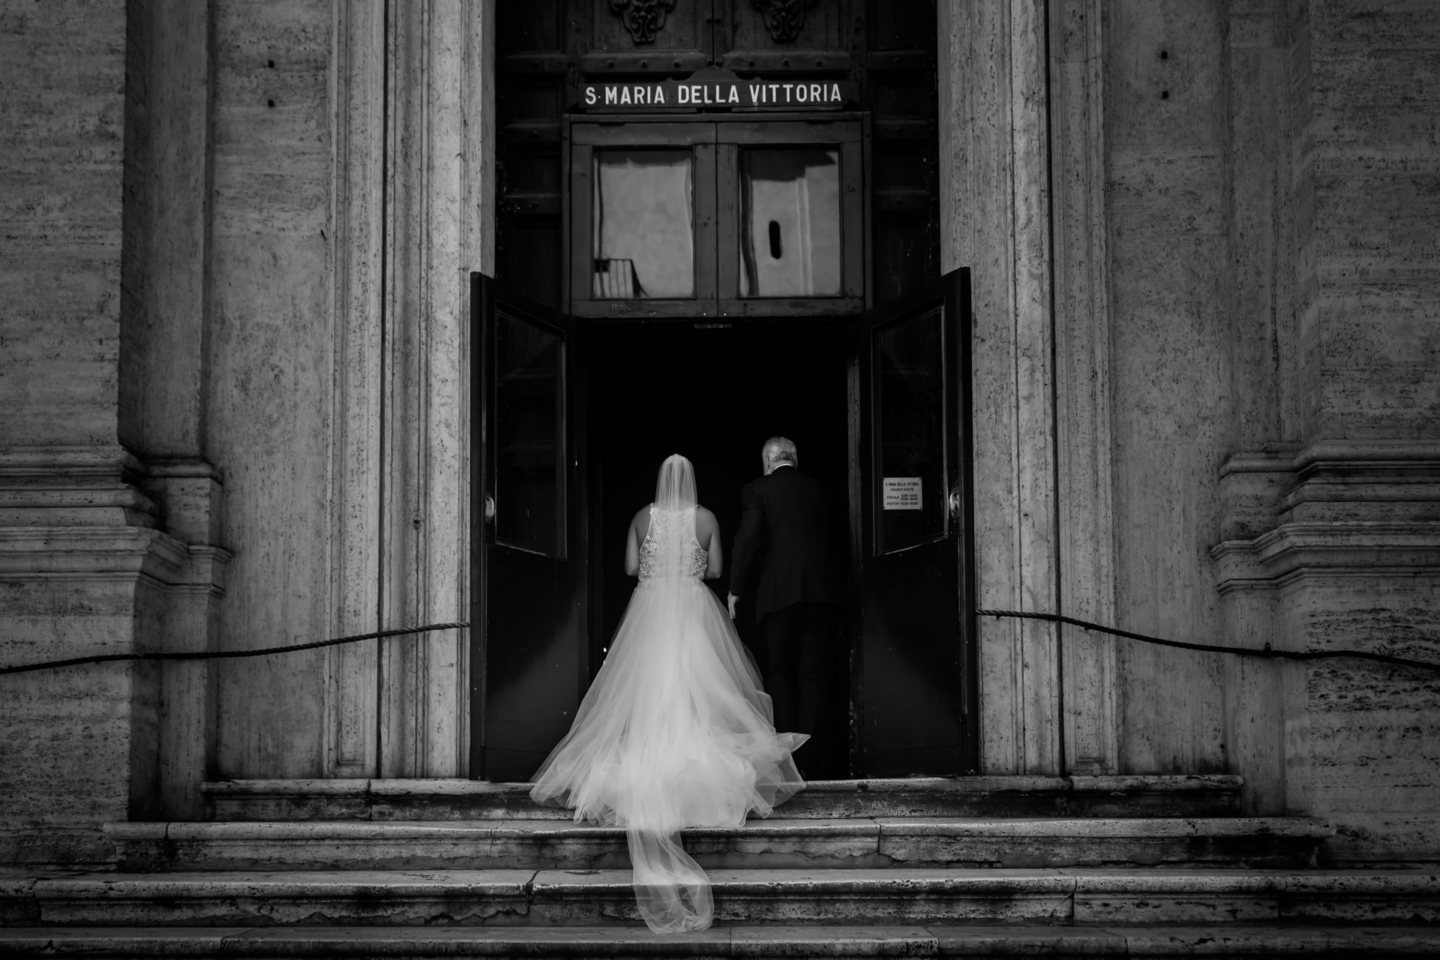 A breath-taking wedding in Rome, the eternal city :: Luxury wedding photography - 15